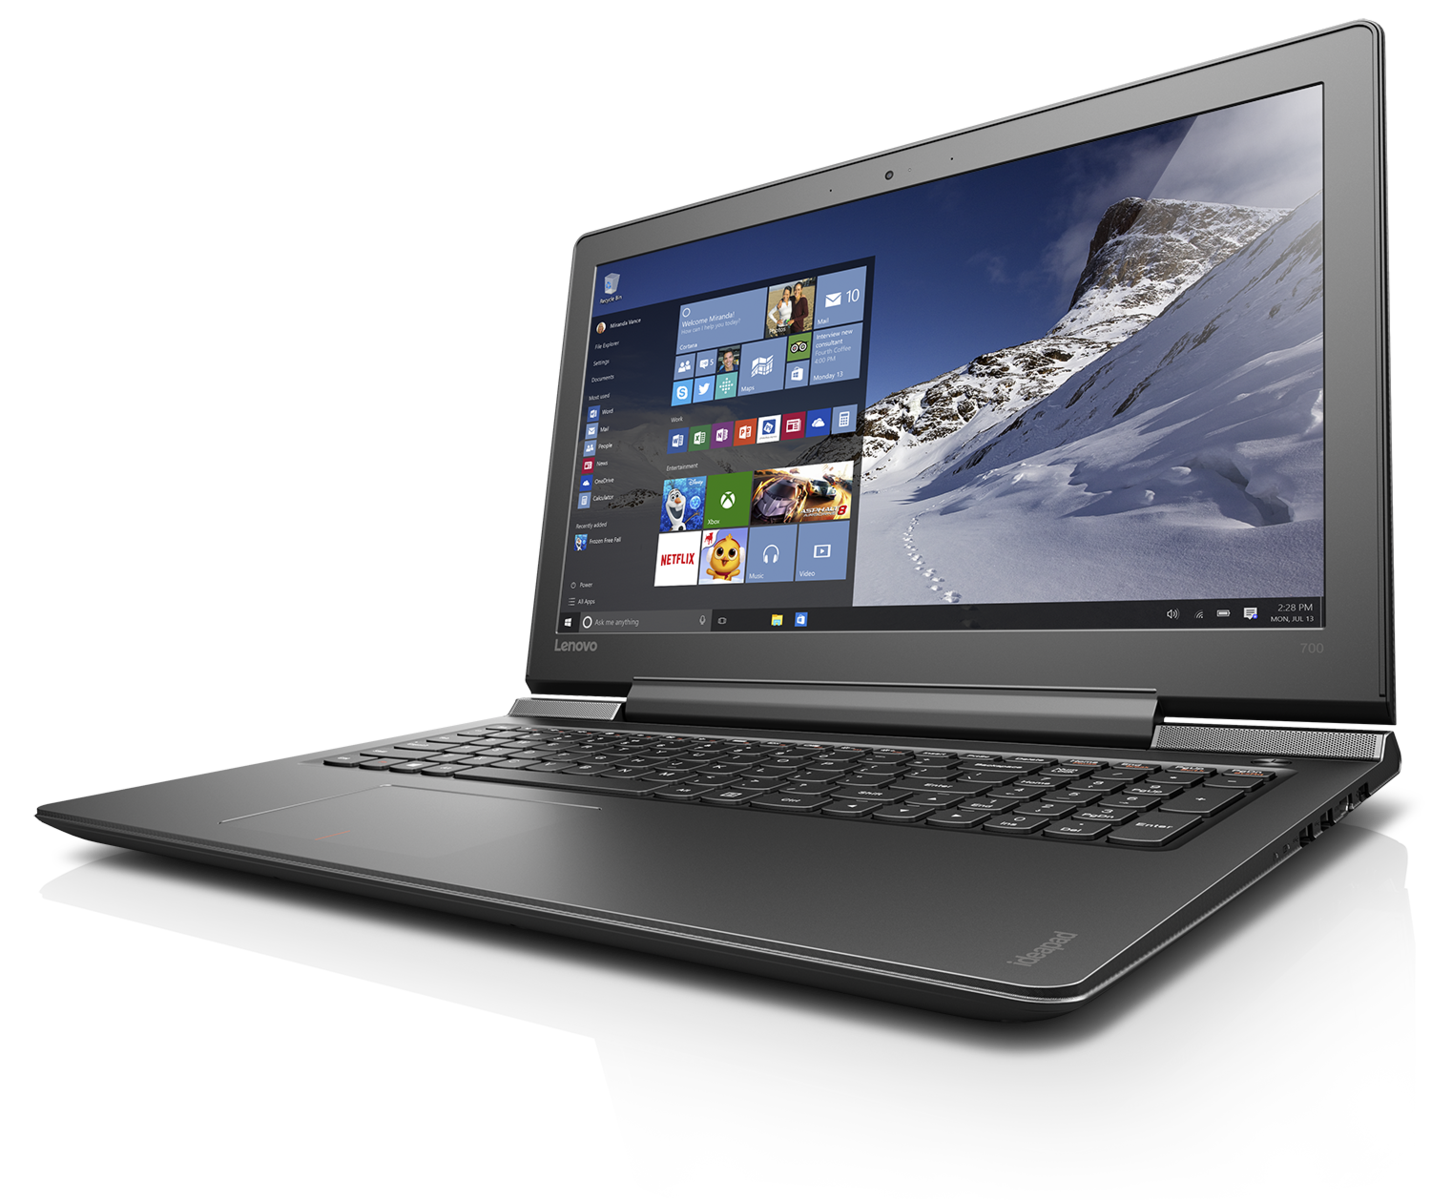 lenovo announces the ideapad y900 gaming laptop ideapad 710s and ideapad 700 notebookcheck. Black Bedroom Furniture Sets. Home Design Ideas